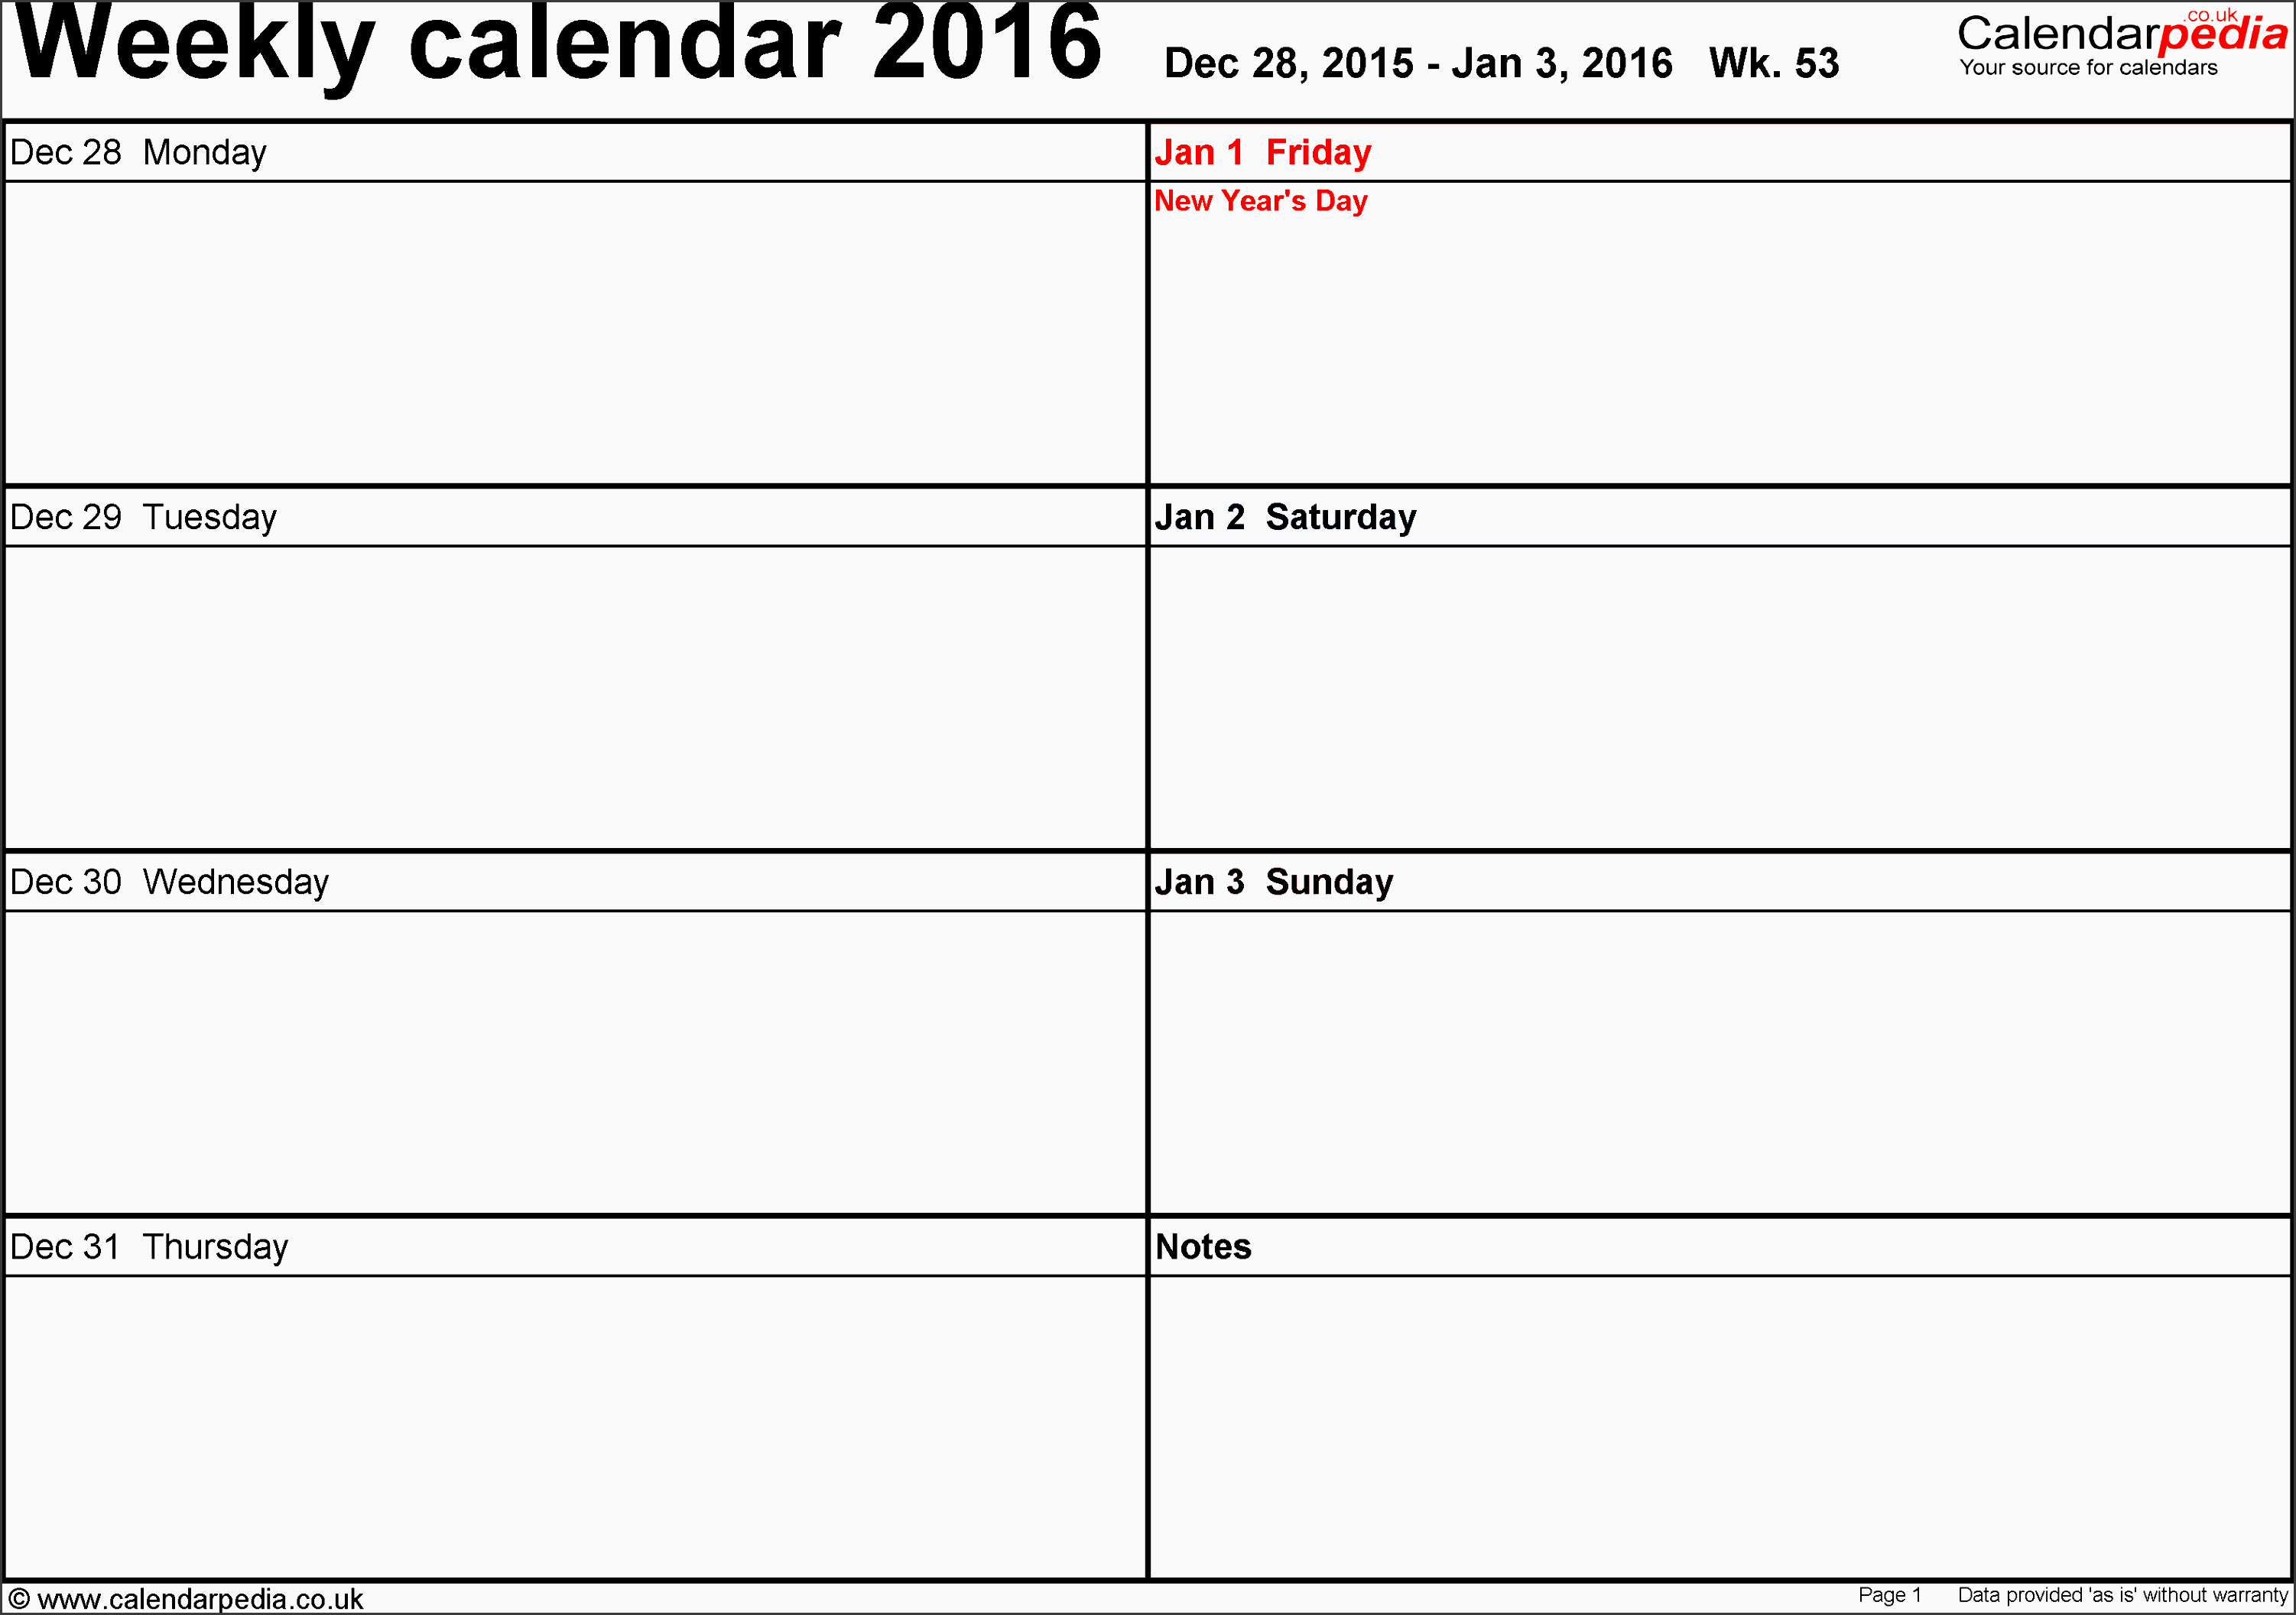 excel template 6 weekly calendar 2016 landscape orientation days horizontally 53 pages